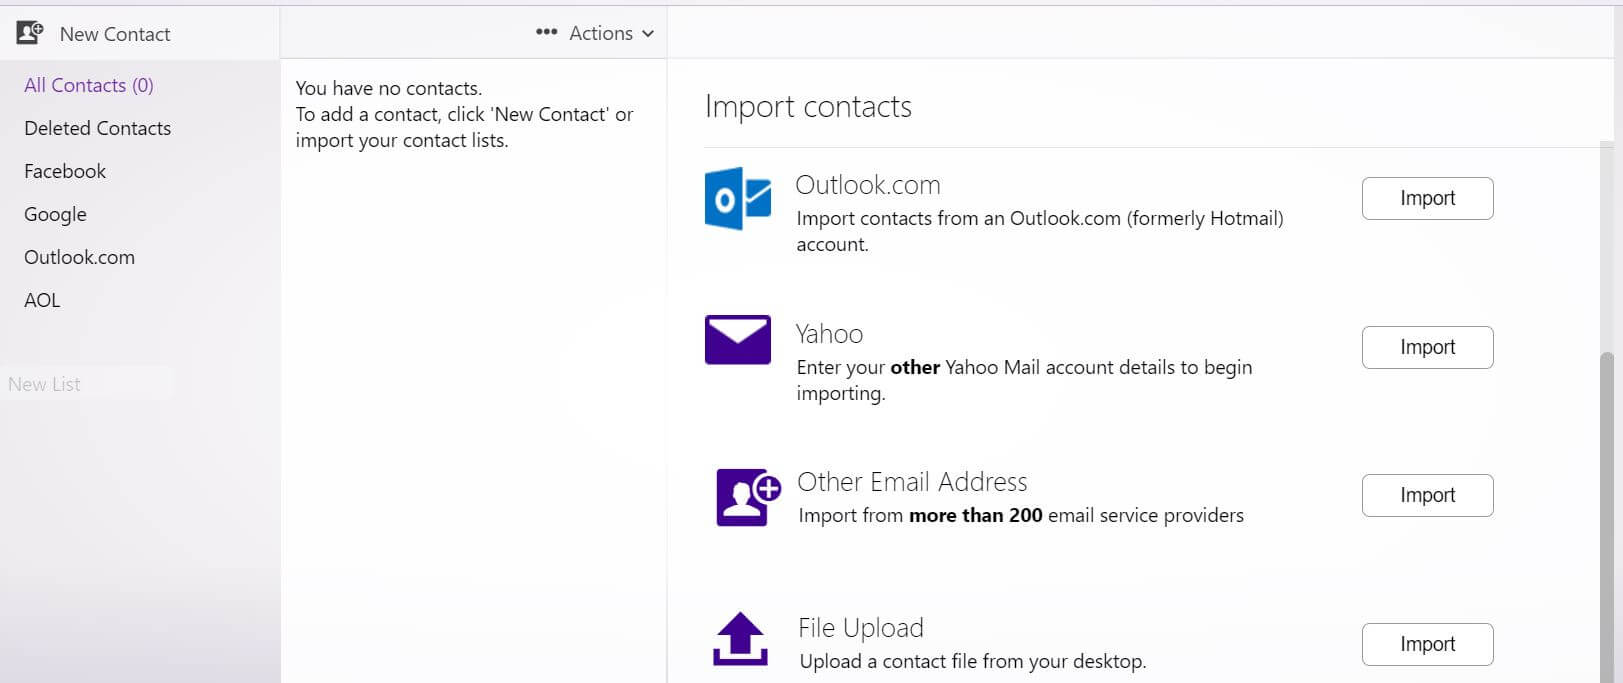 Yahoo Mail now lets you import contacts from more than 200 email